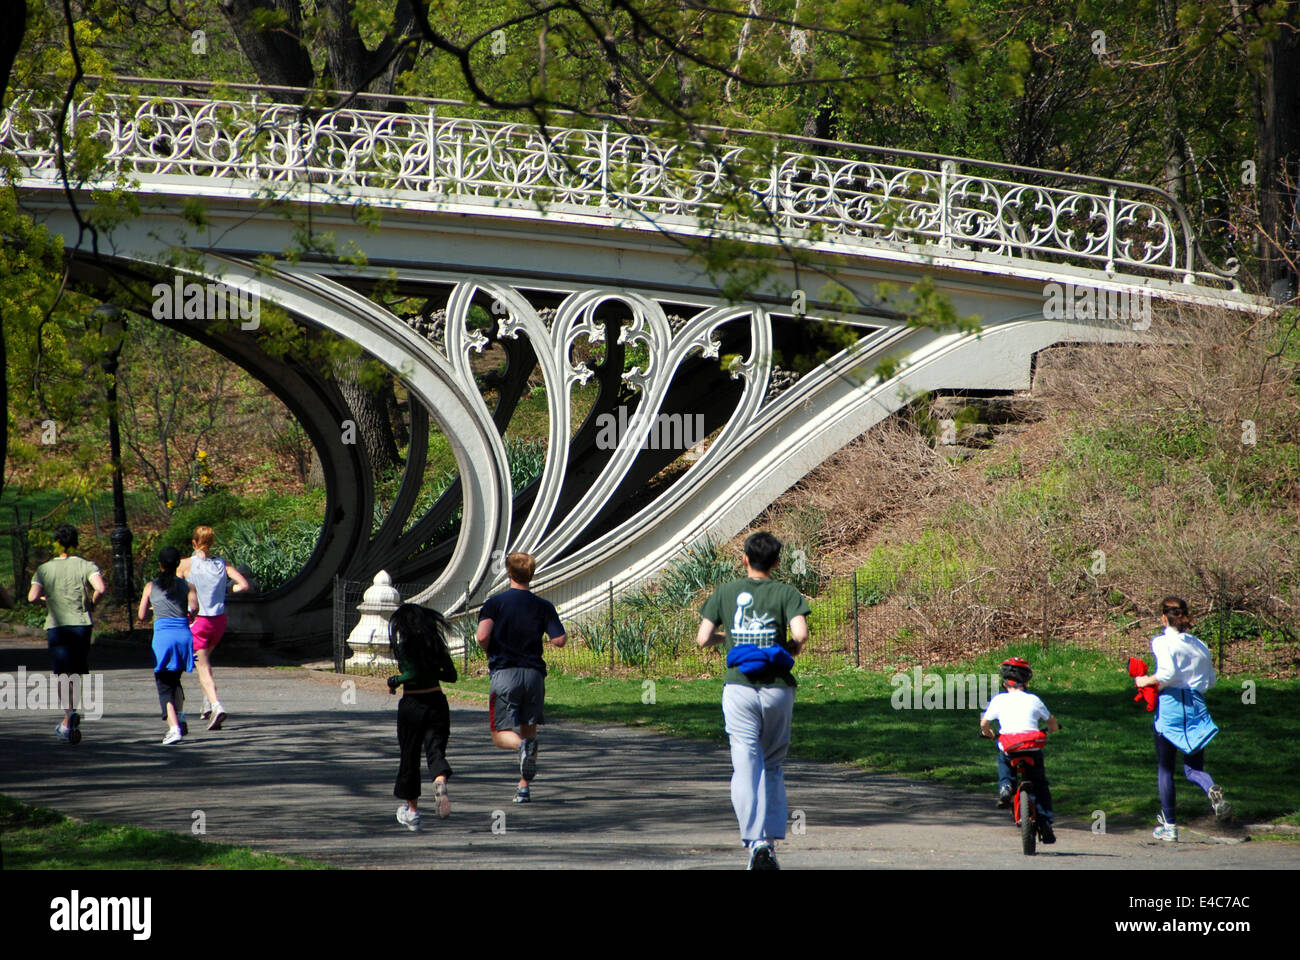 nyc joggers running past a superb cast iron art nouveau style